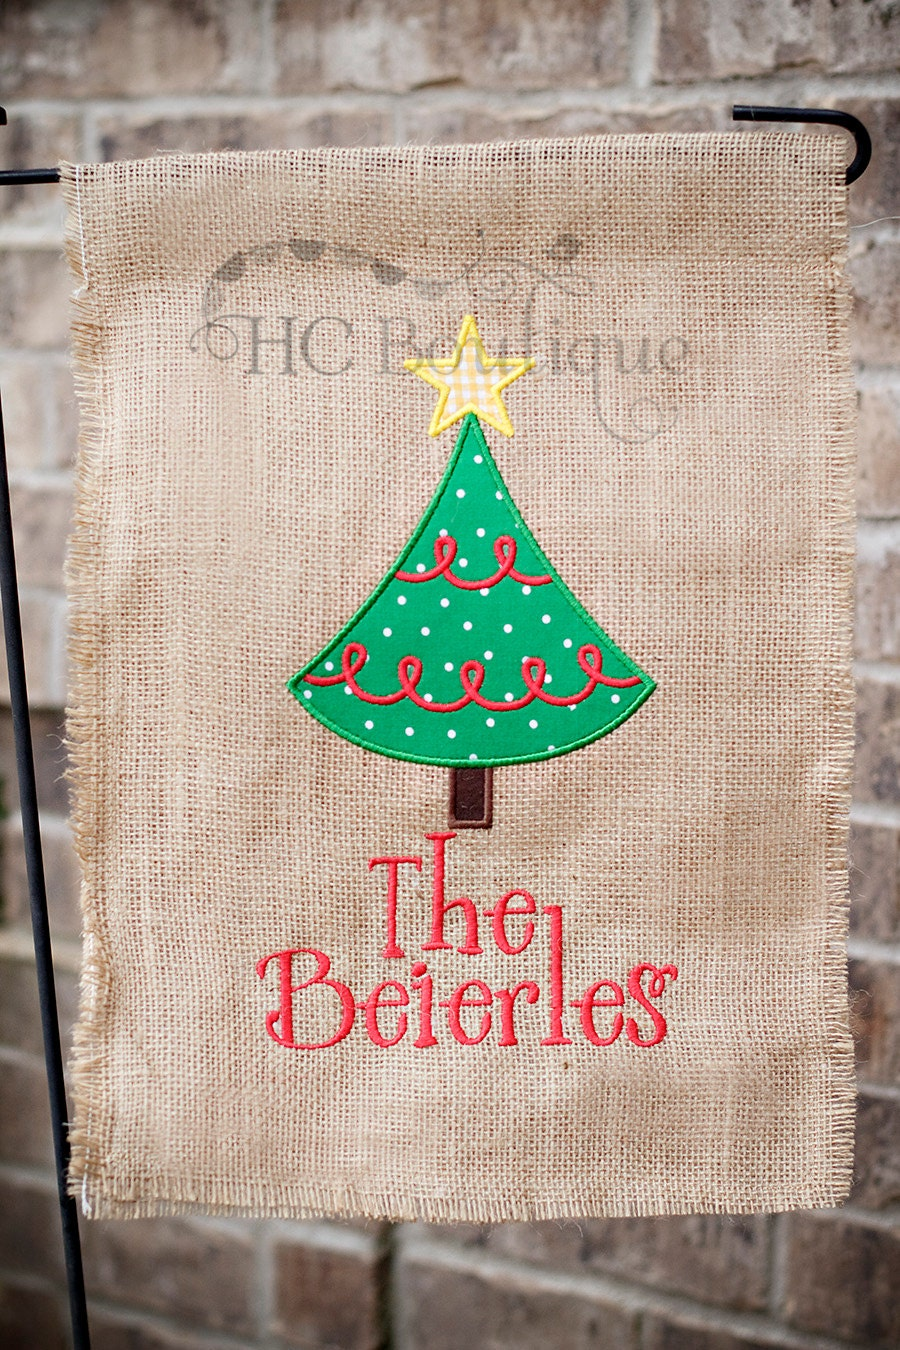 Christmas Burlap Garden Flag Personalized By Jculpepper10